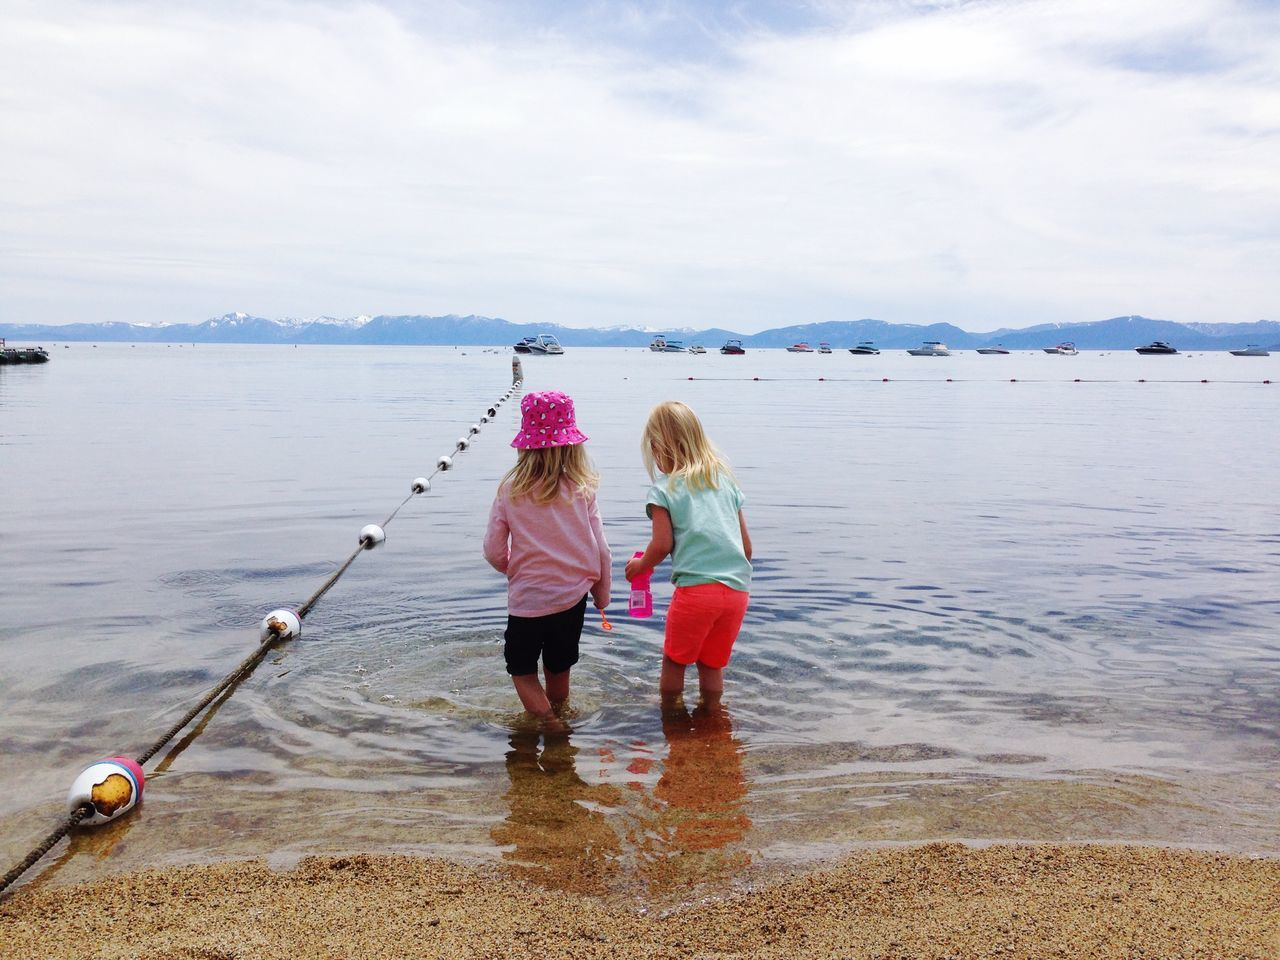 Girls Cousins  Sisters Friends Childhood Water Lake Lake Front Vacation Lake Tahoe Incline Village Nevada California Sierra Nevada Mountains